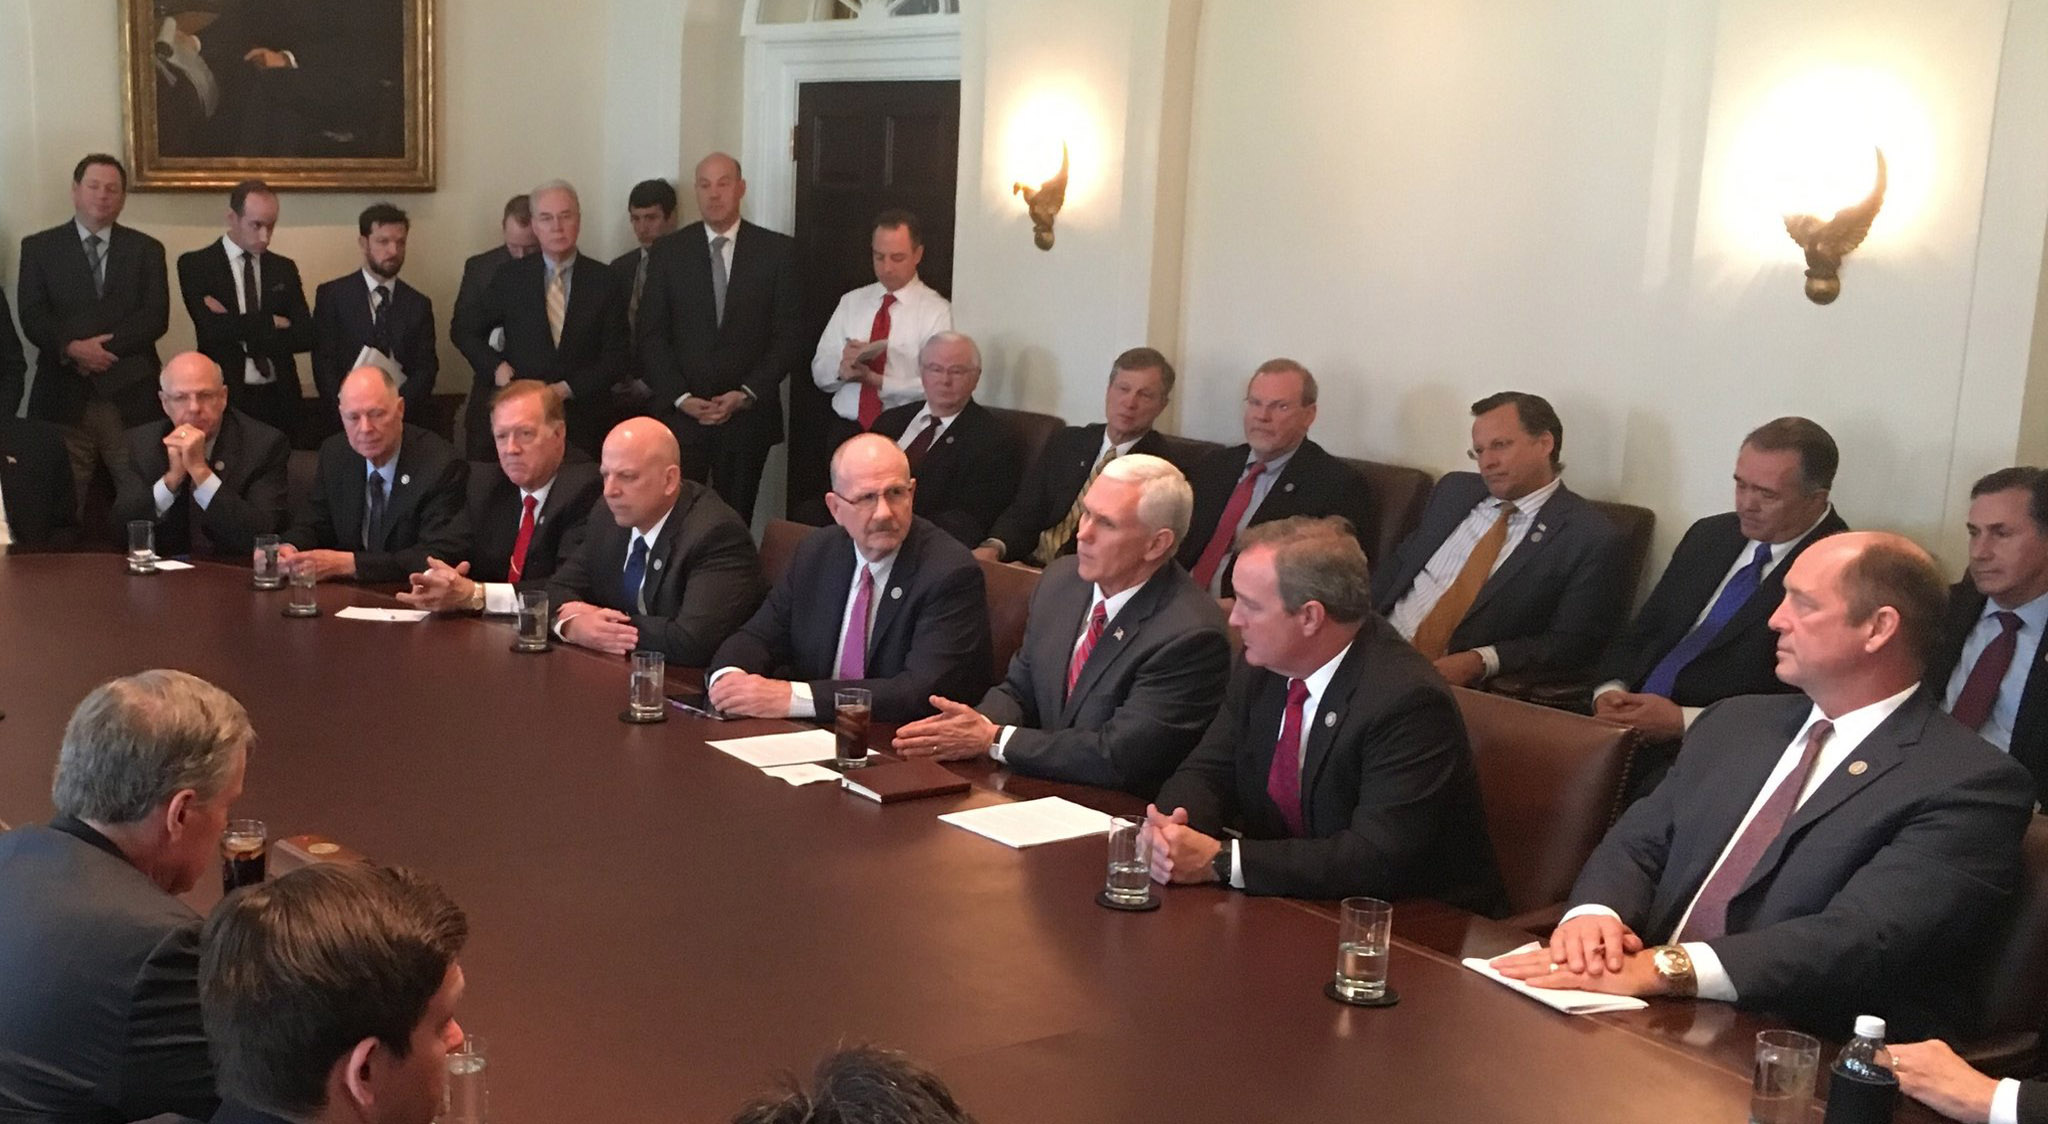 What's Missing From This Photo of Politicians Deciding the Future of Women's Health?